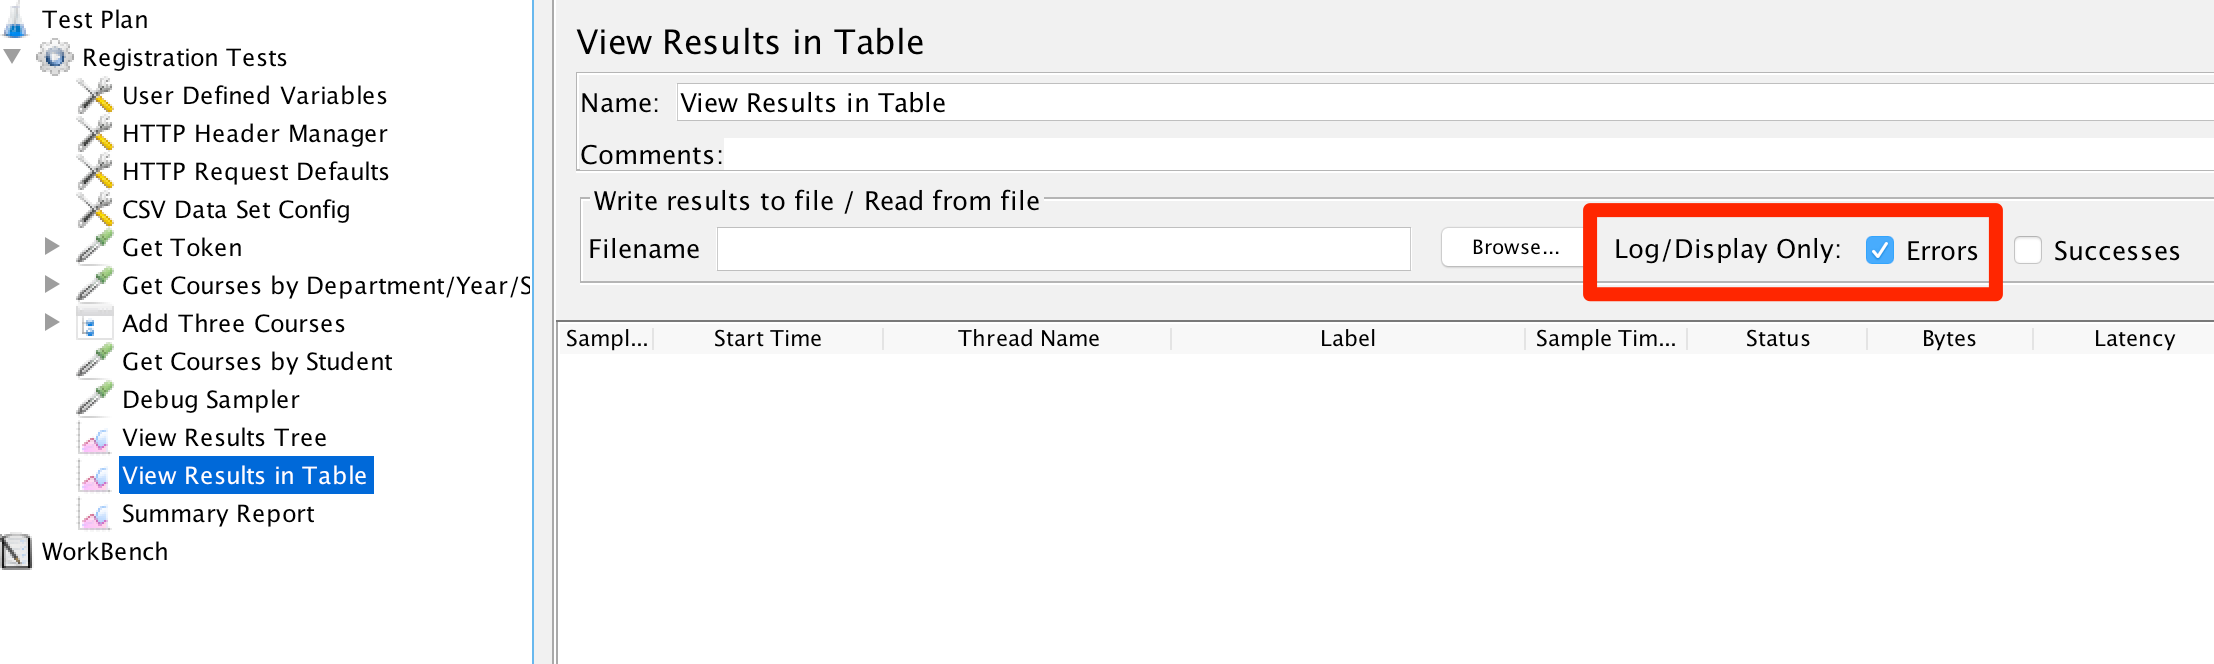 Log Errors Only in View Results in Table